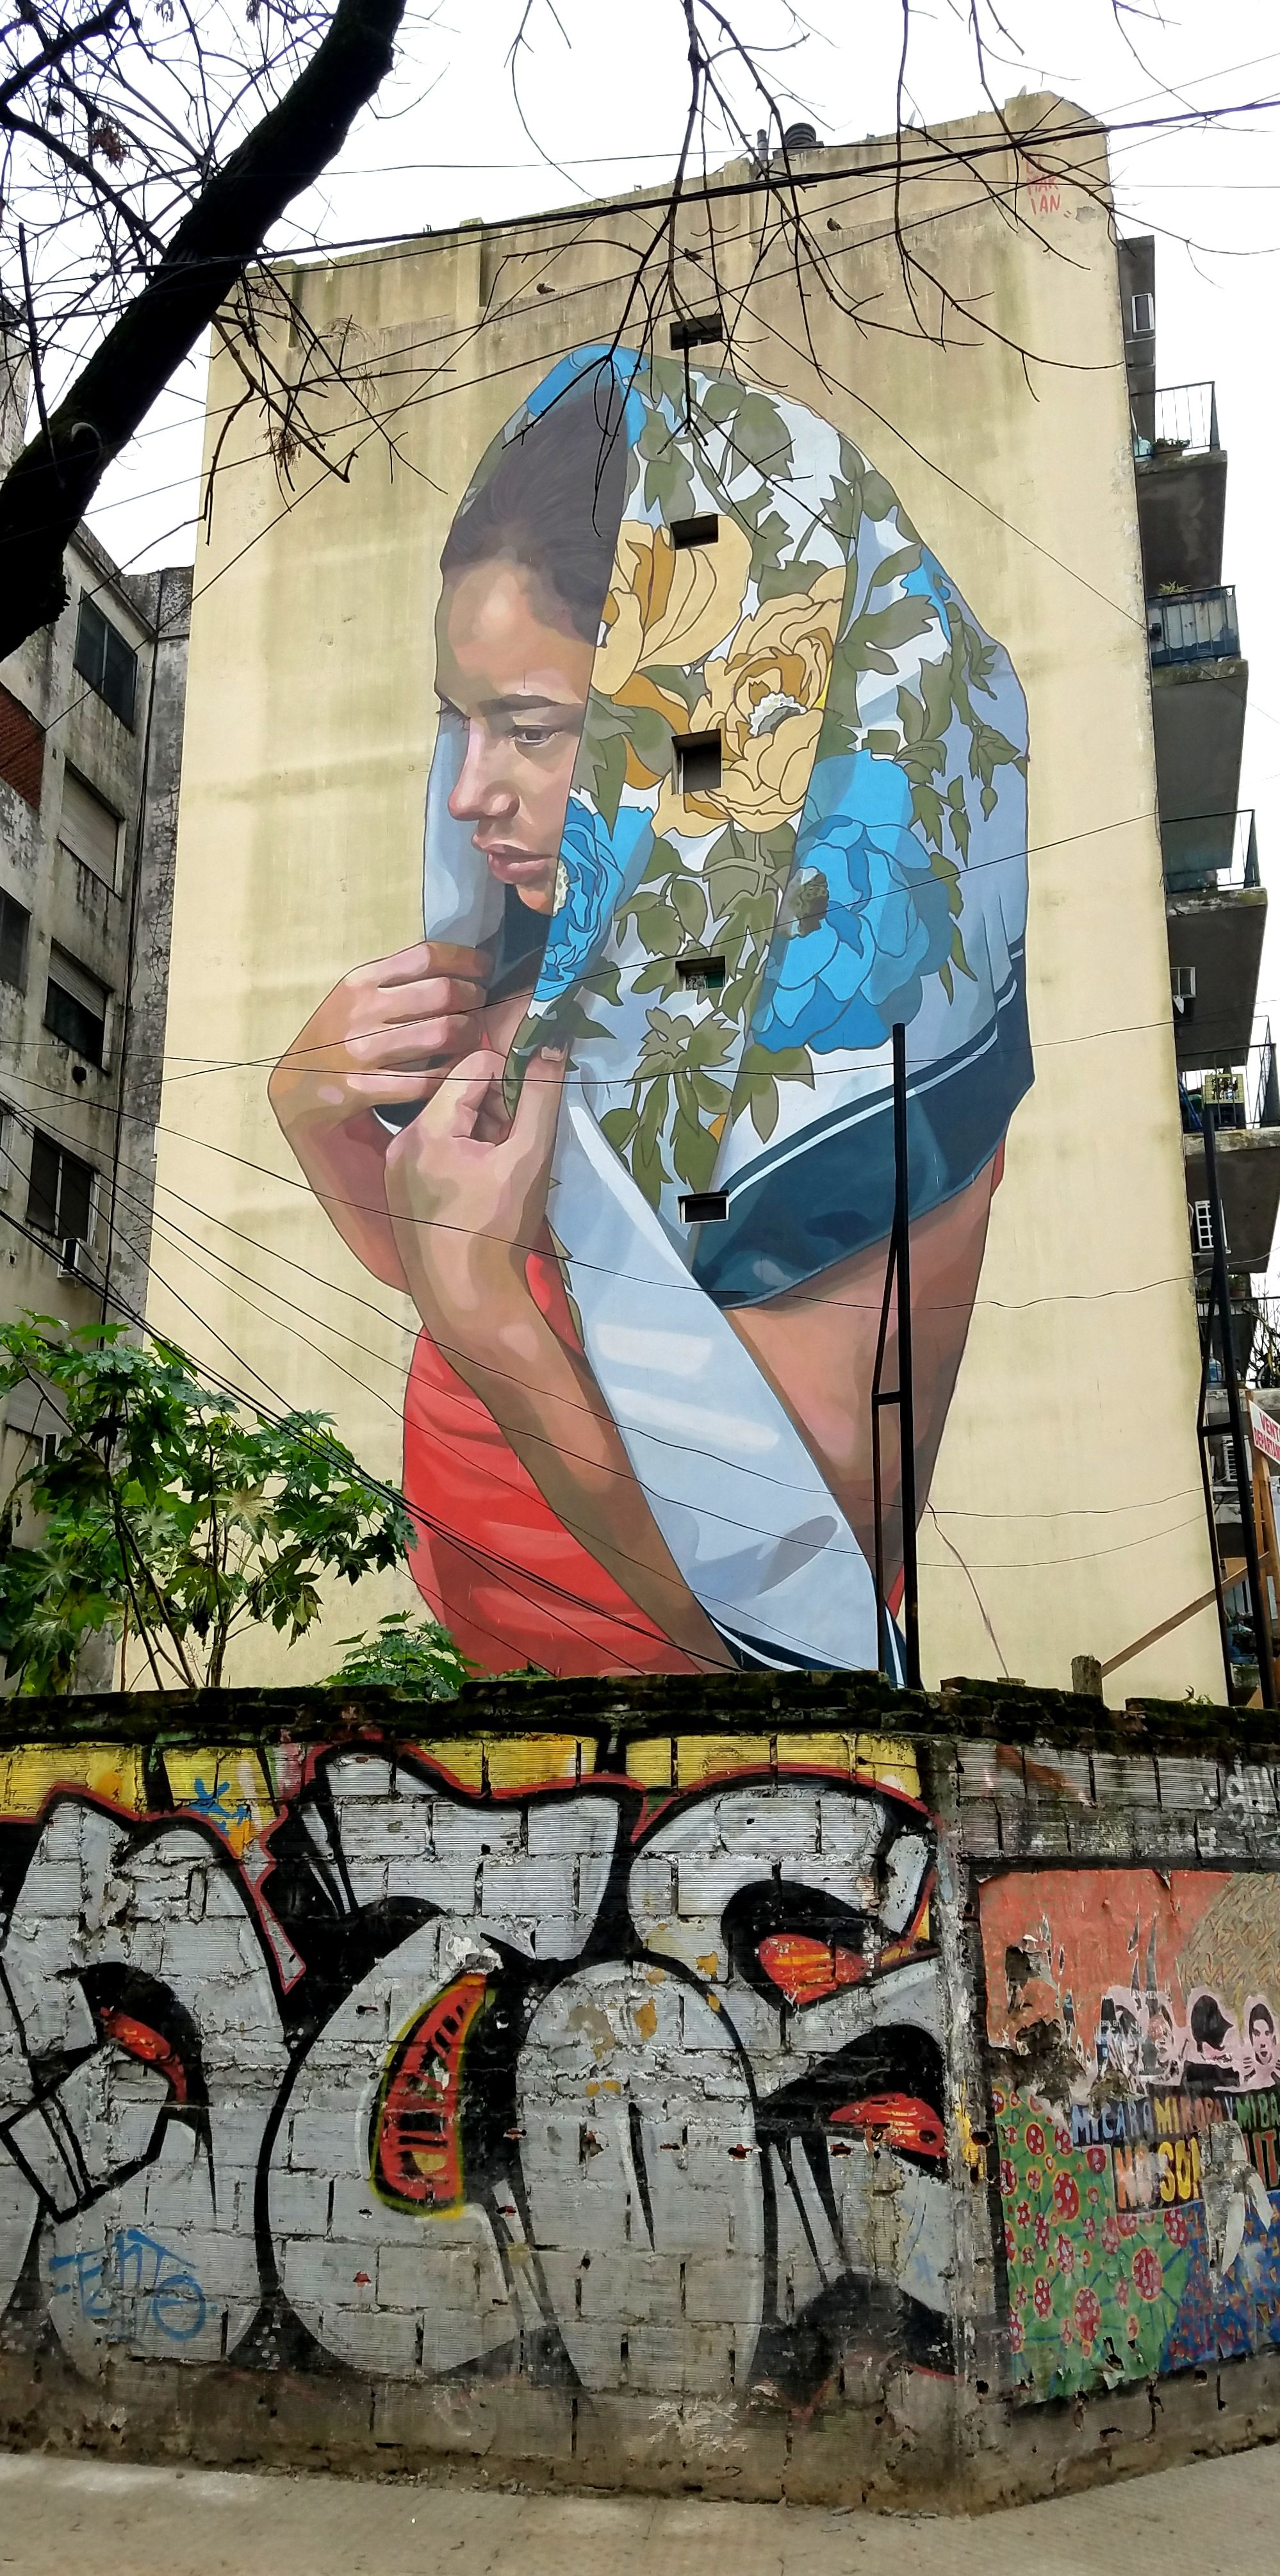 Buenos Aires Argentina Street Art Graffiti This Is From The Tango District